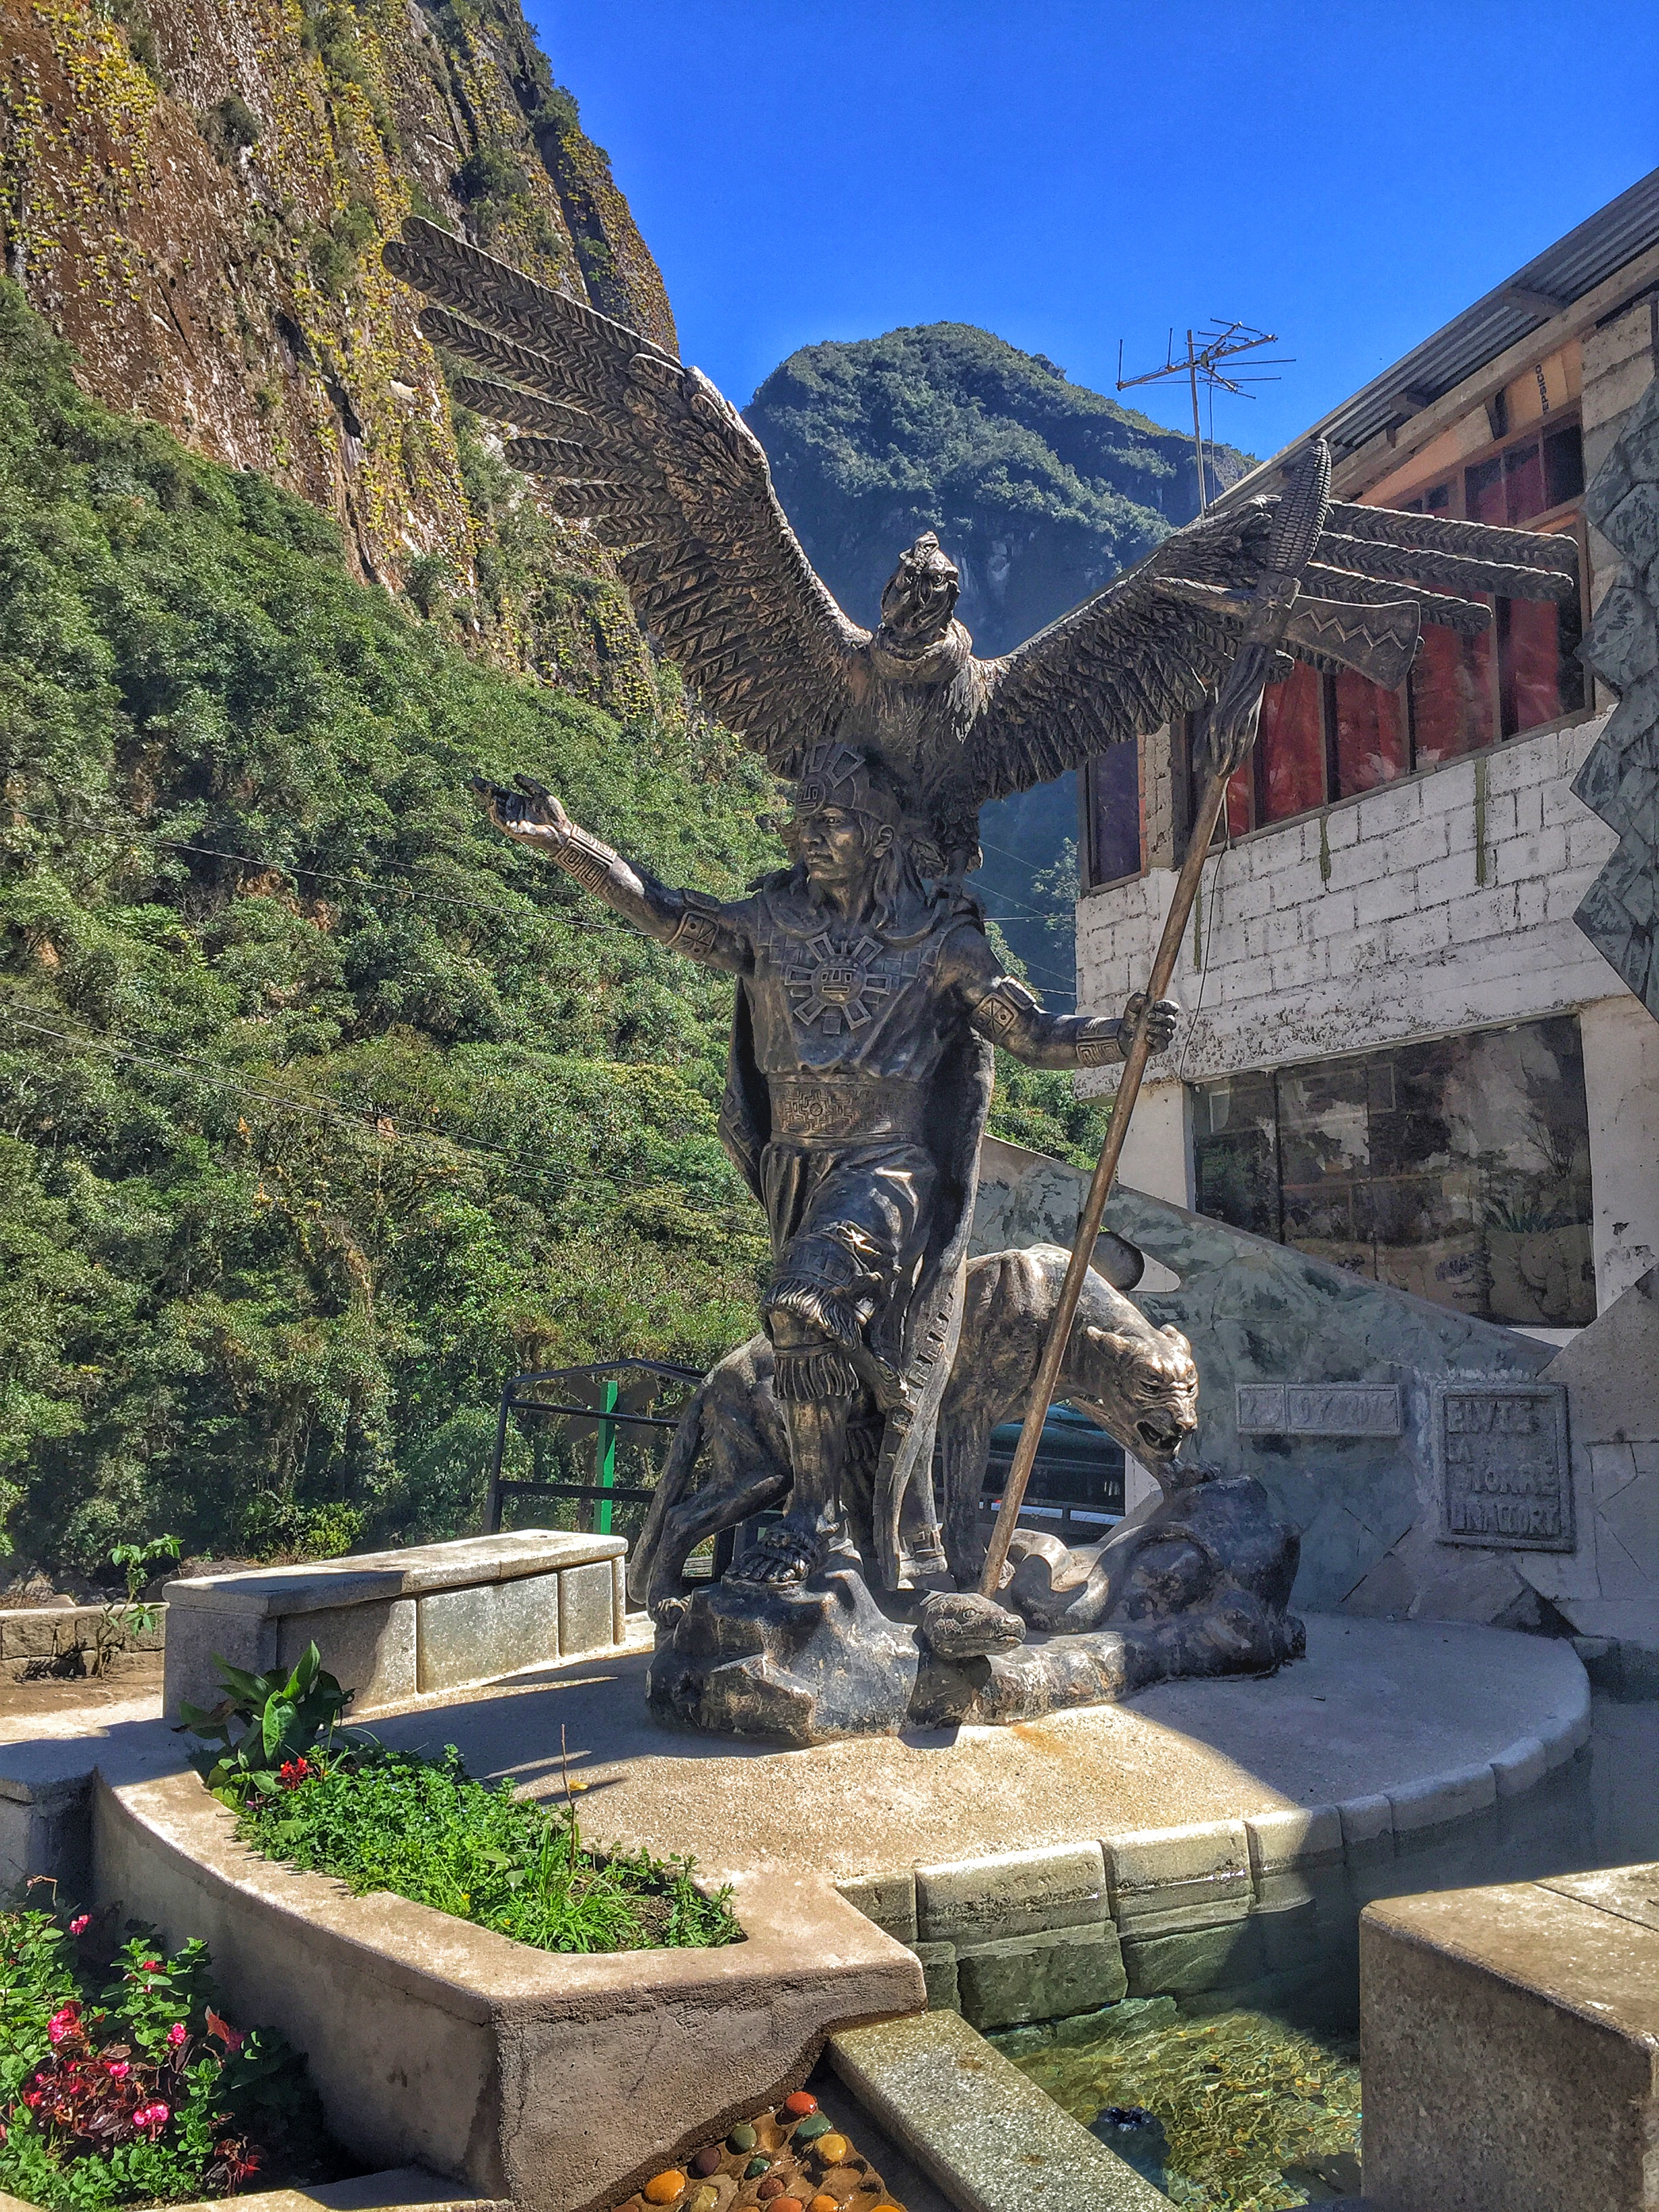 Statue at Aguas Calientes depicting the 3 animals the Incas worshiped.